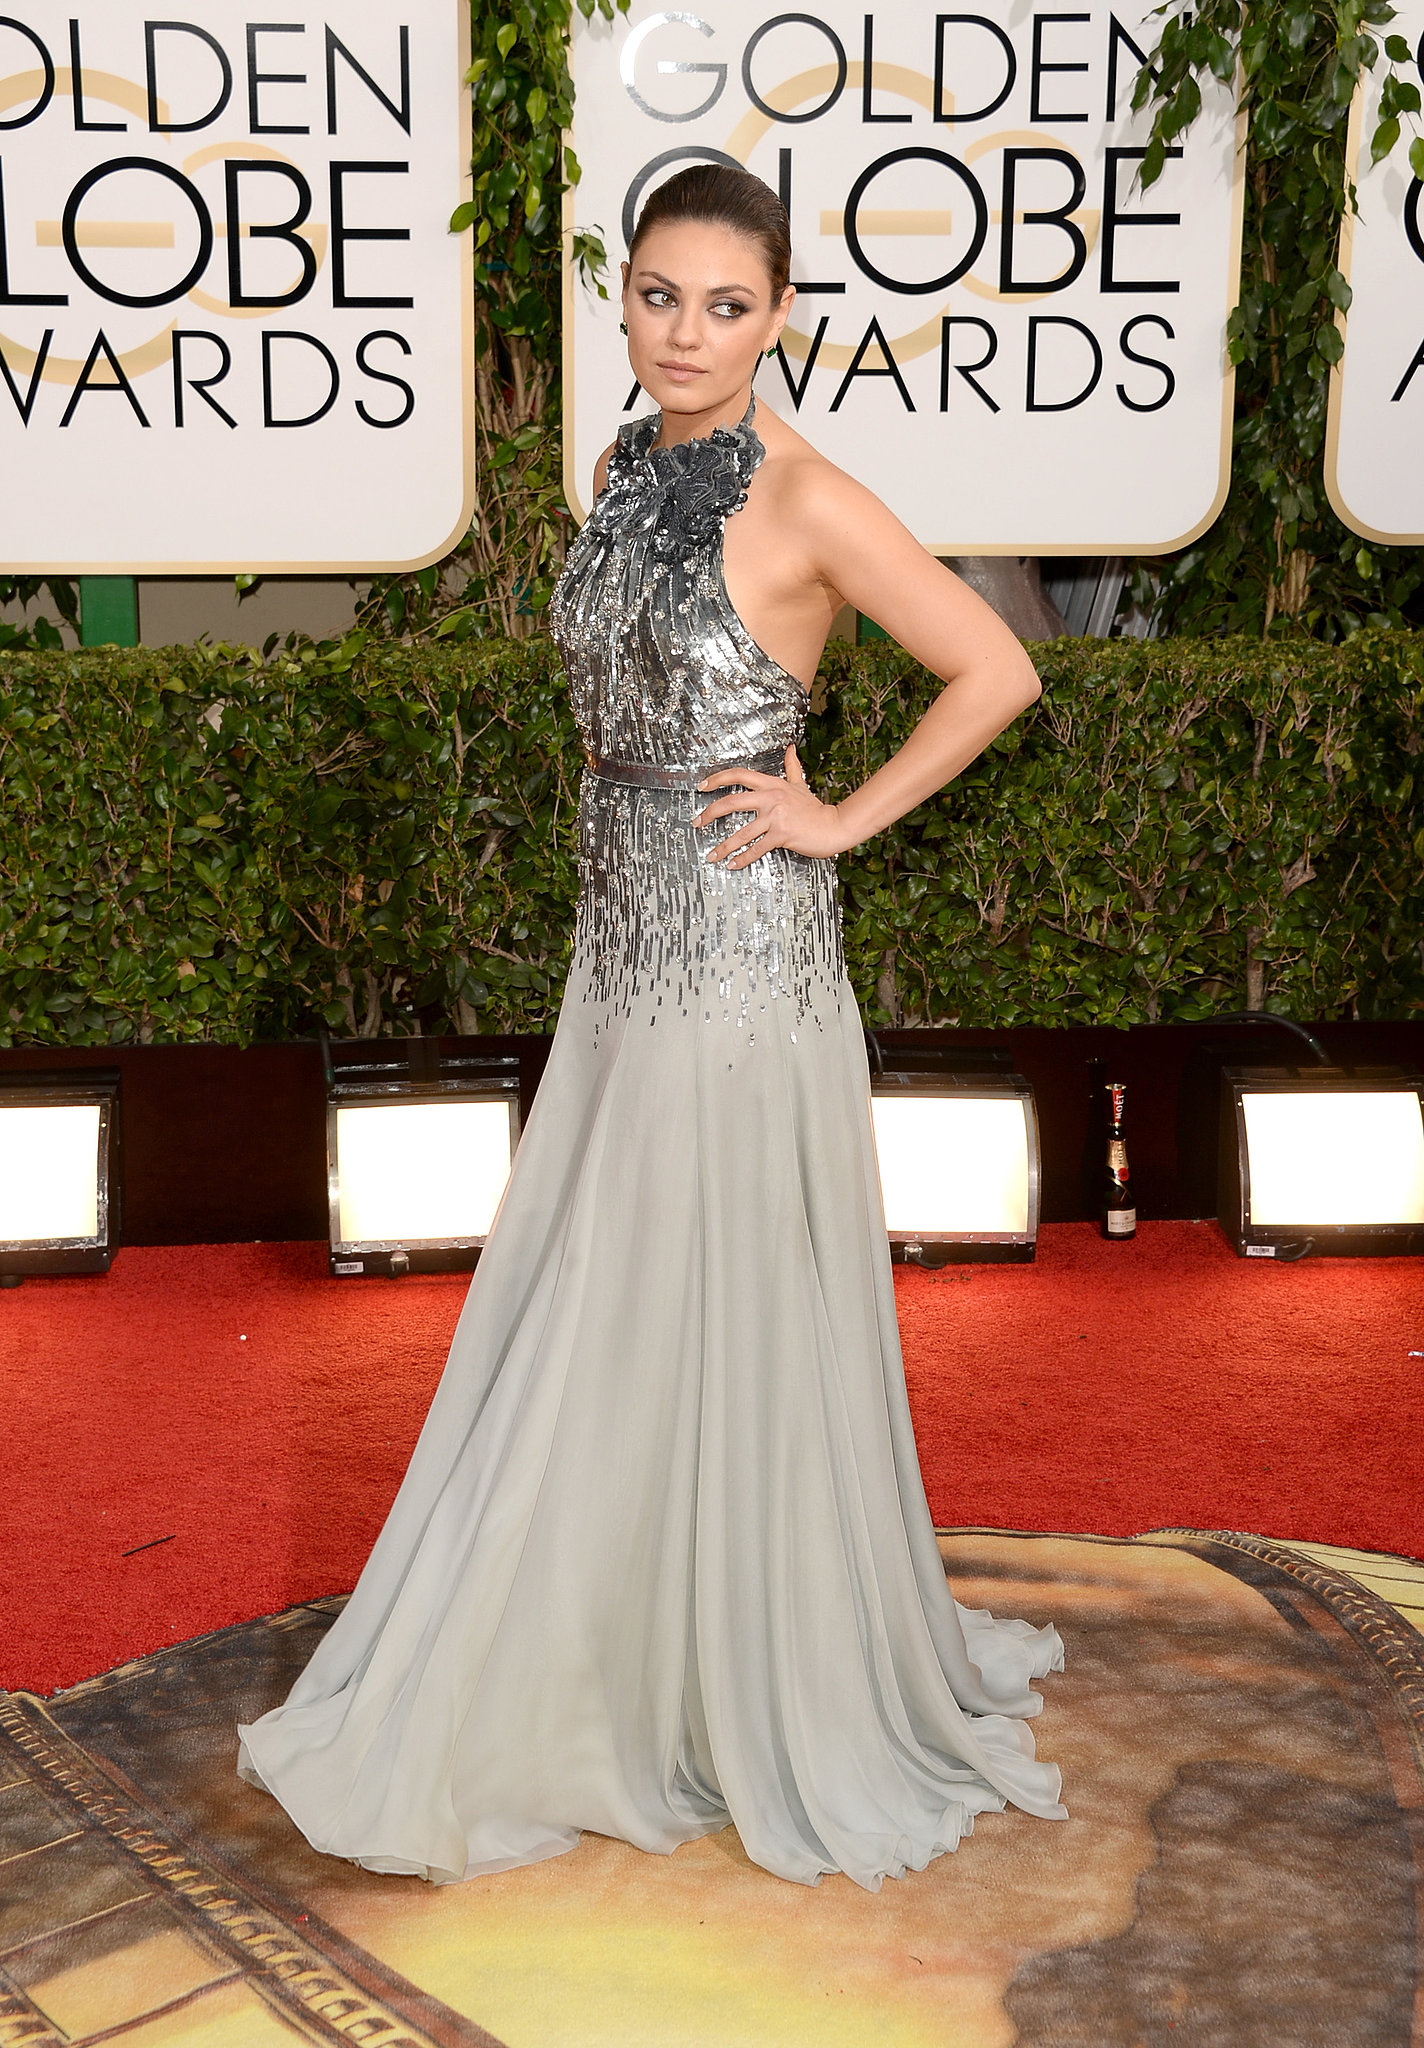 Mila Kunis showed up for her presenting gig at the Golden Globes.